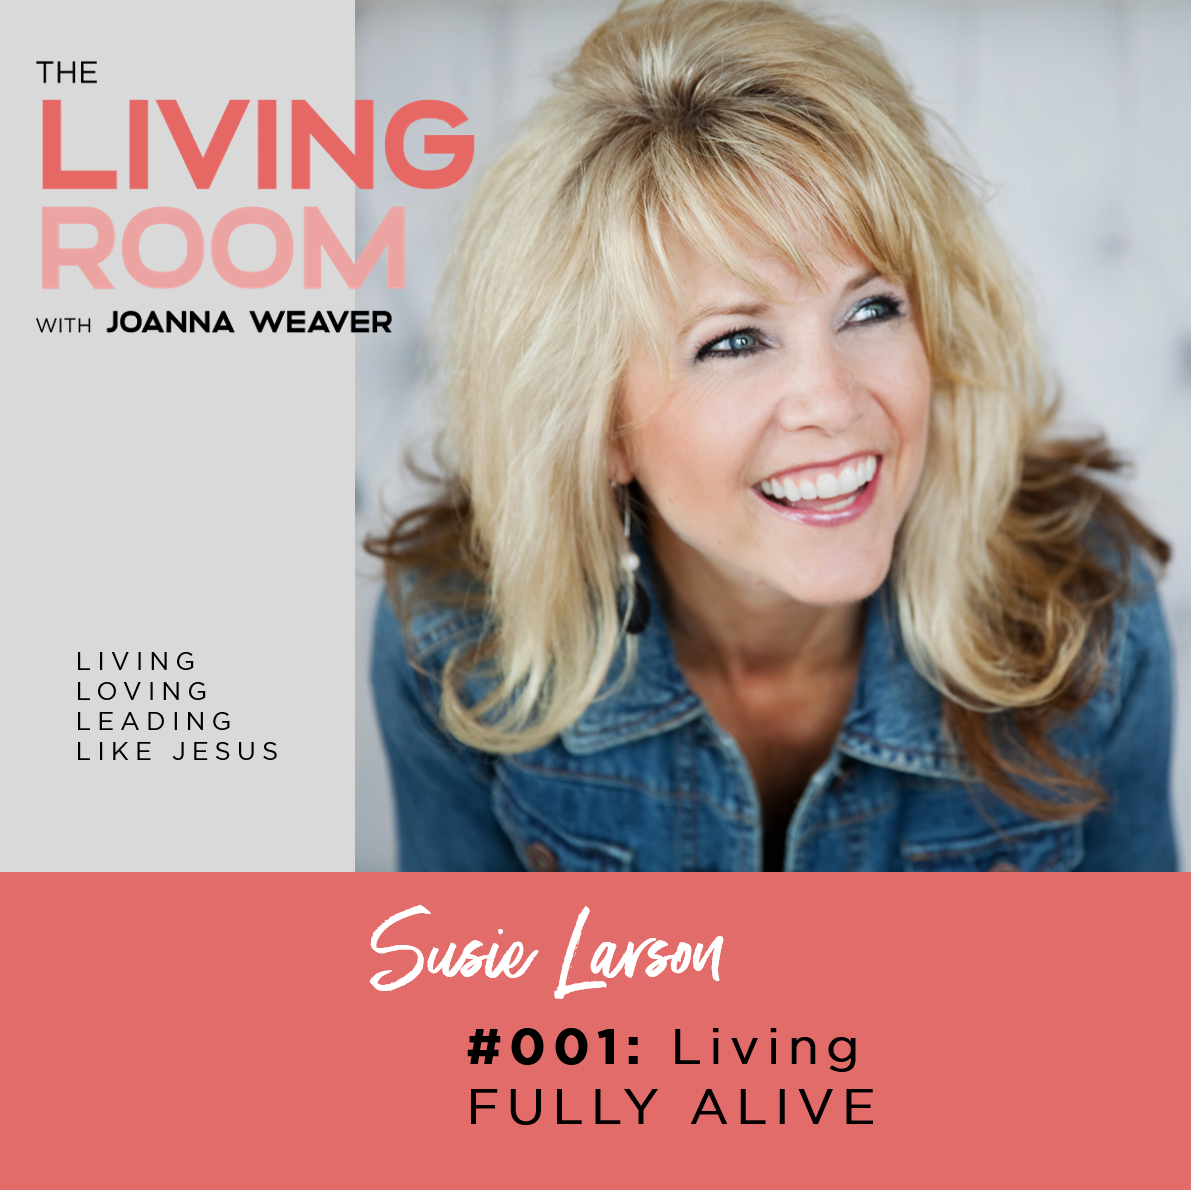 001: The Living Room Podcast - Guest Susie Larson